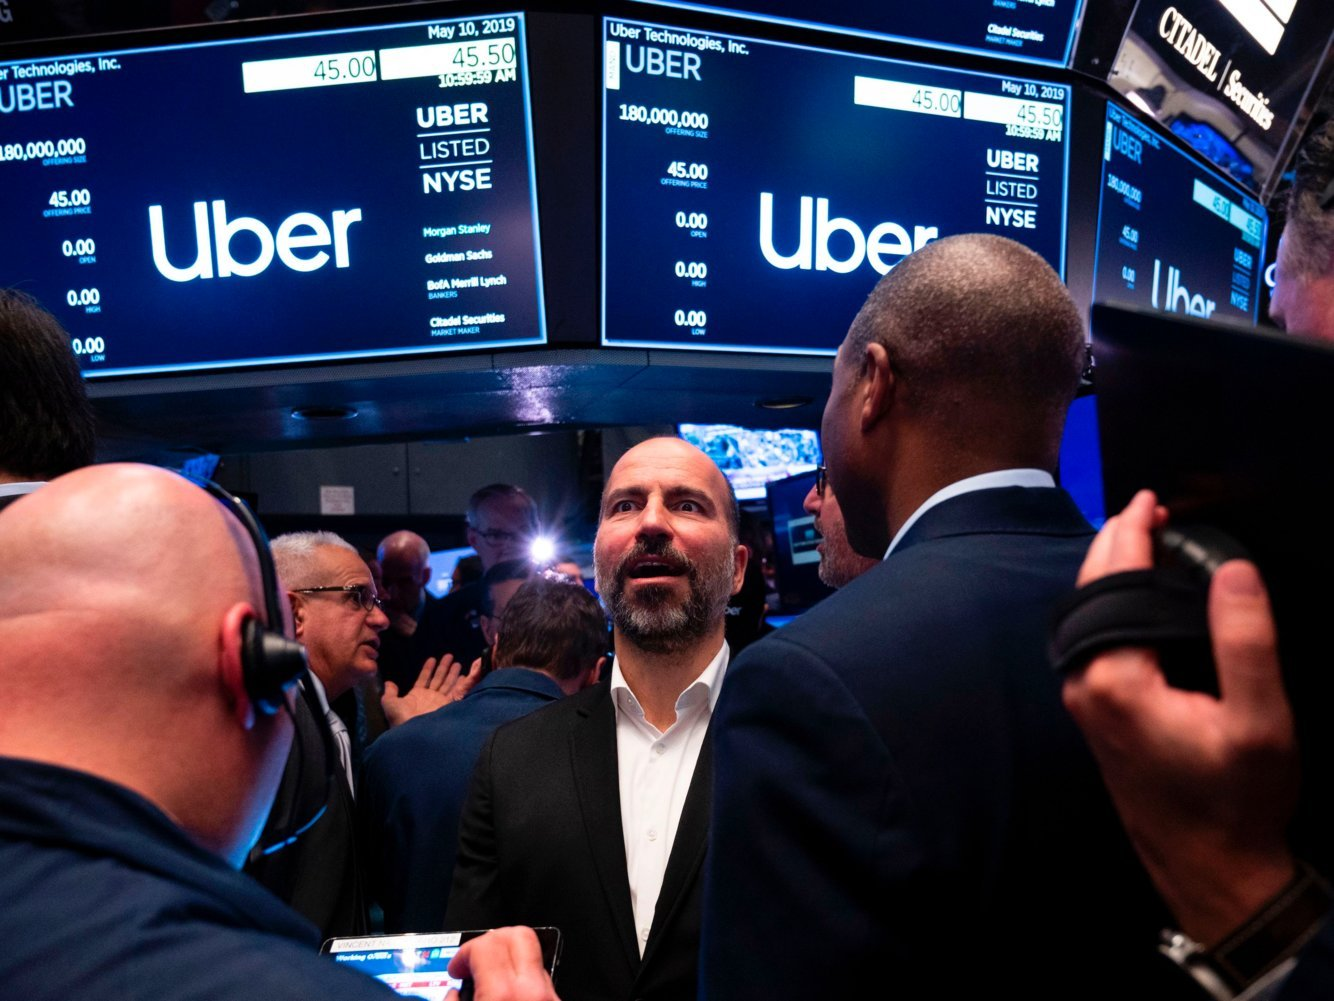 RIDE-HAILING IN HEALTHCARE: Uber and Lyft are aiming to solve the $150 billion annual problem of US medical transport — here's why automakers should enter the fray